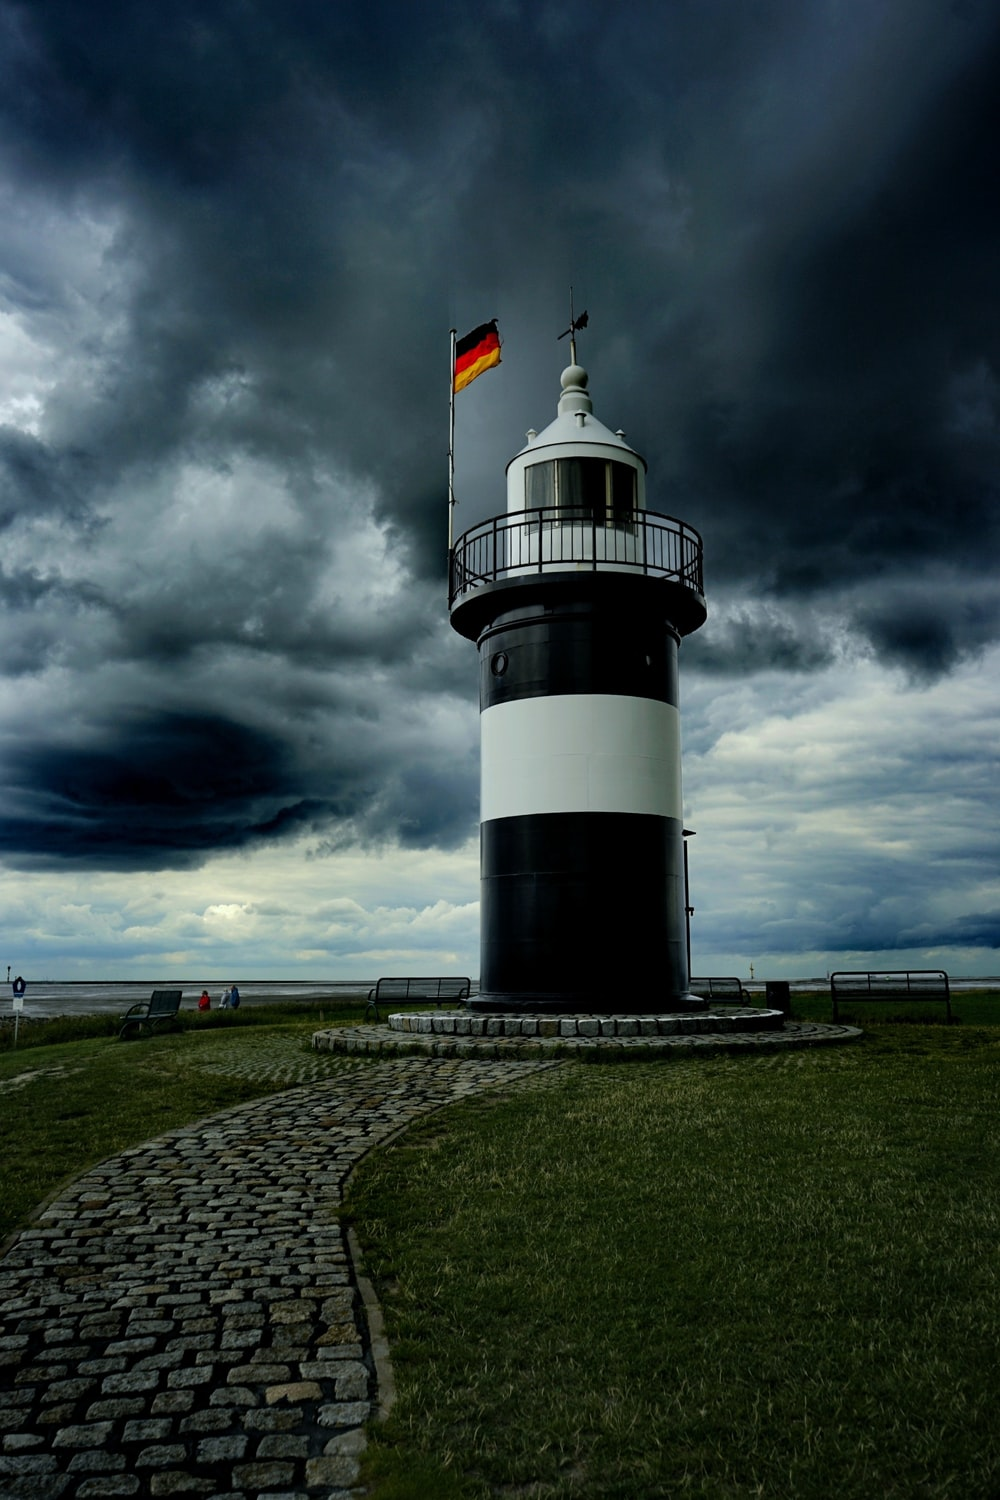 white and black lighthouse under cloudy sky during daytime